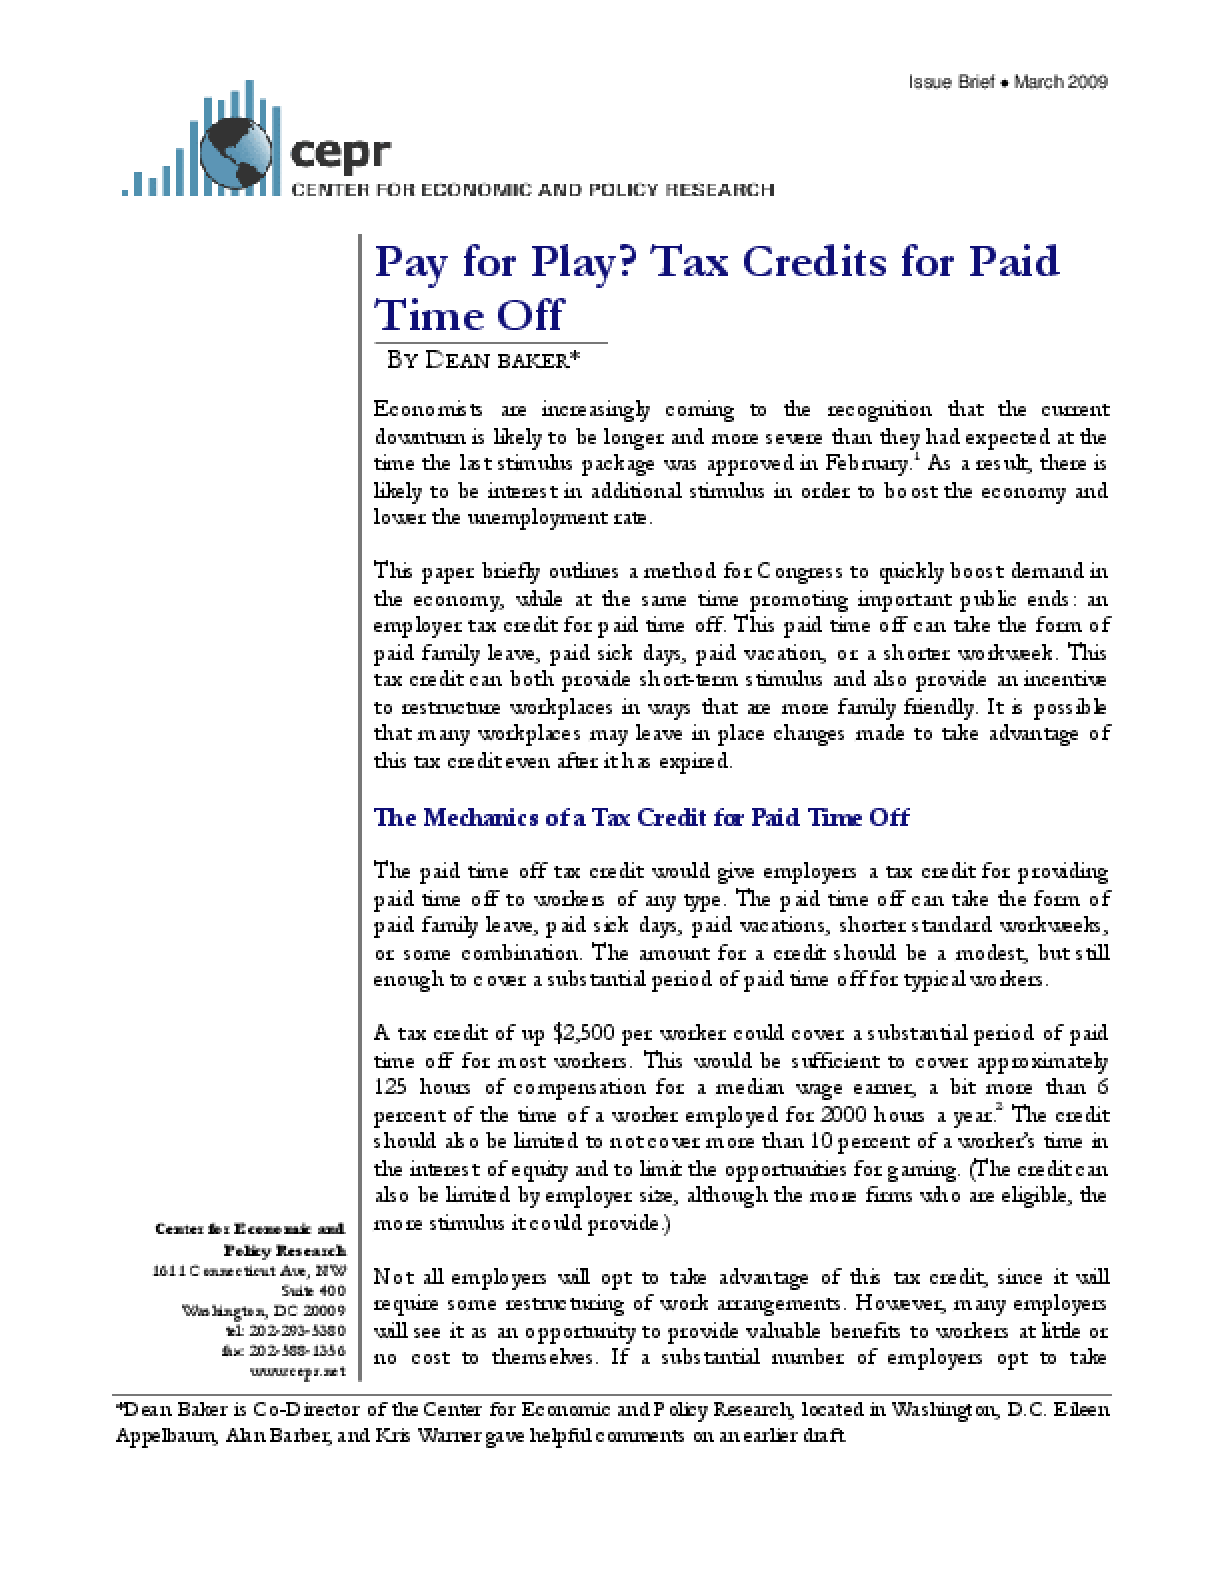 Pay for Play? Tax Credits for Paid Time Off